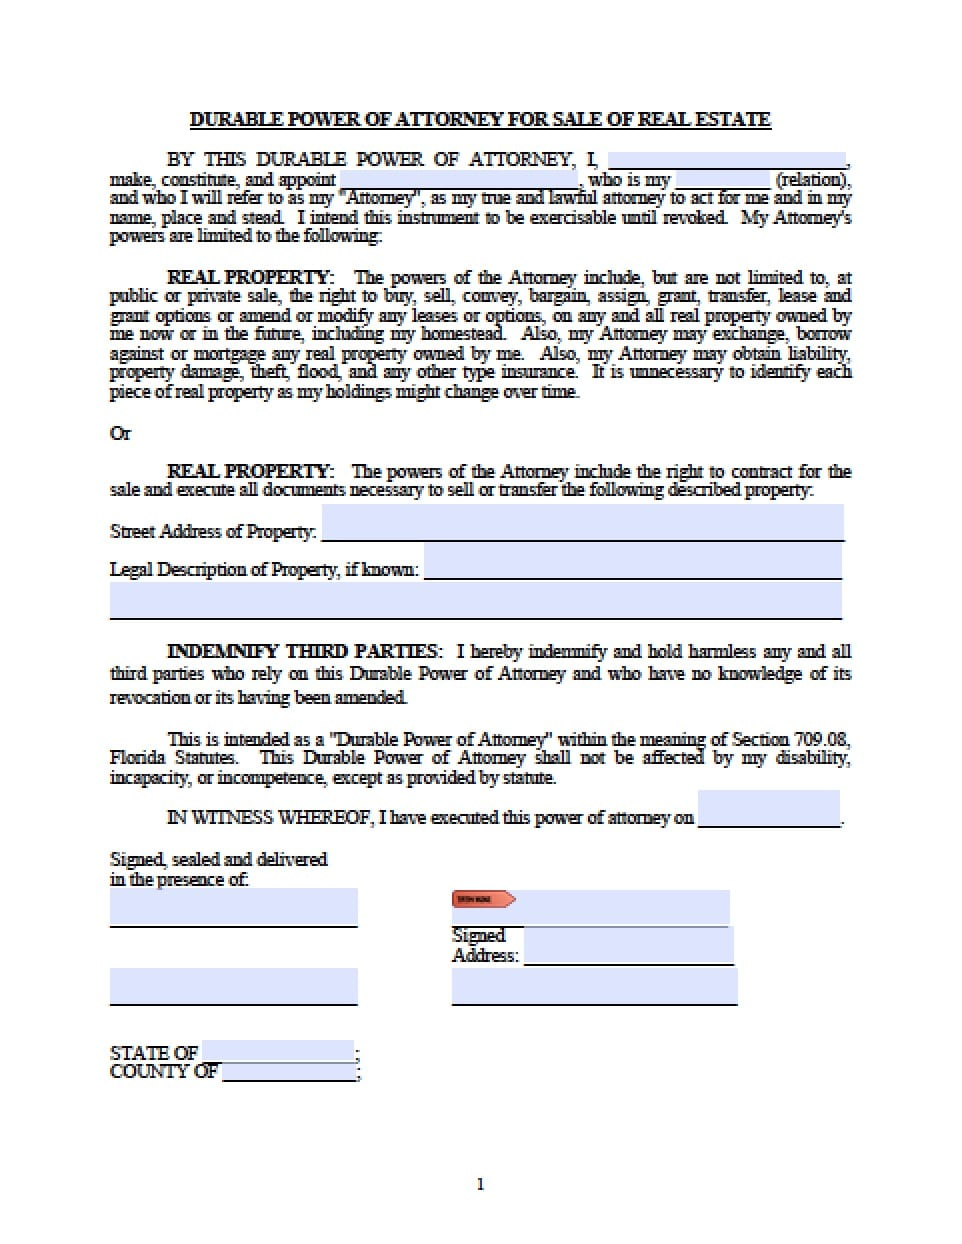 Florida Minor Child Power of Attorney Form - Power of ...